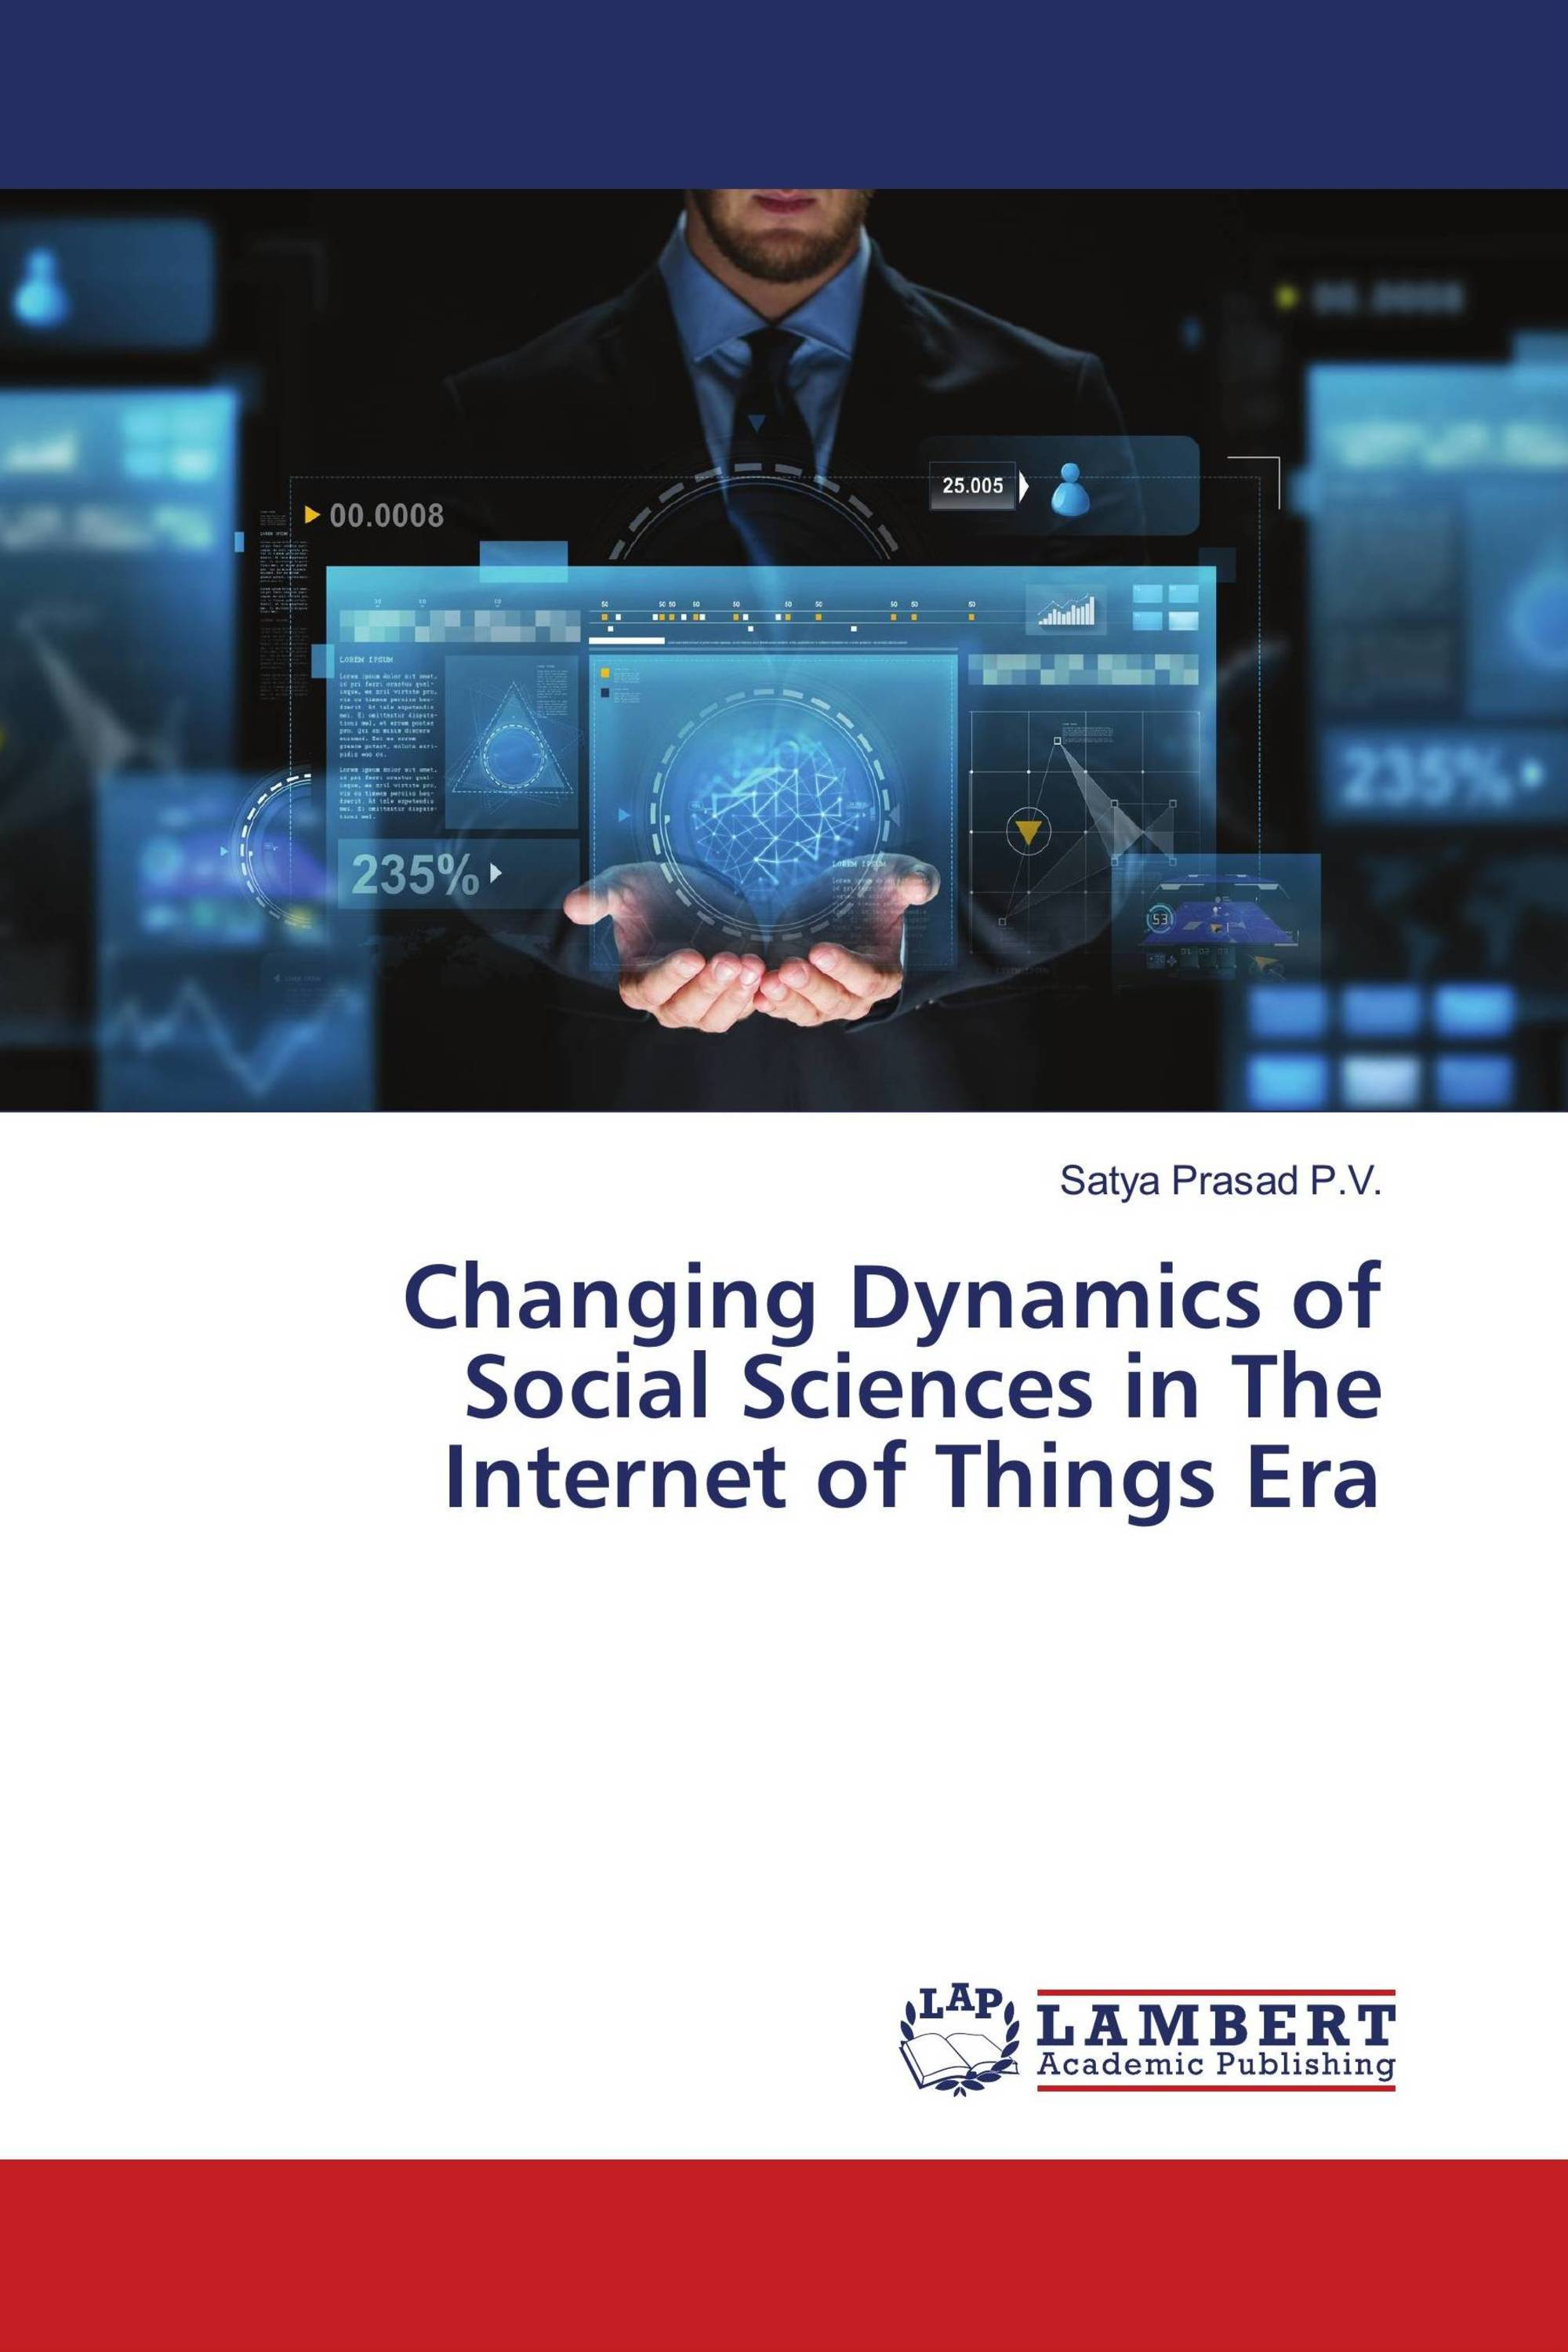 Changing Dynamics of Social Sciences in The Internet of Things Era